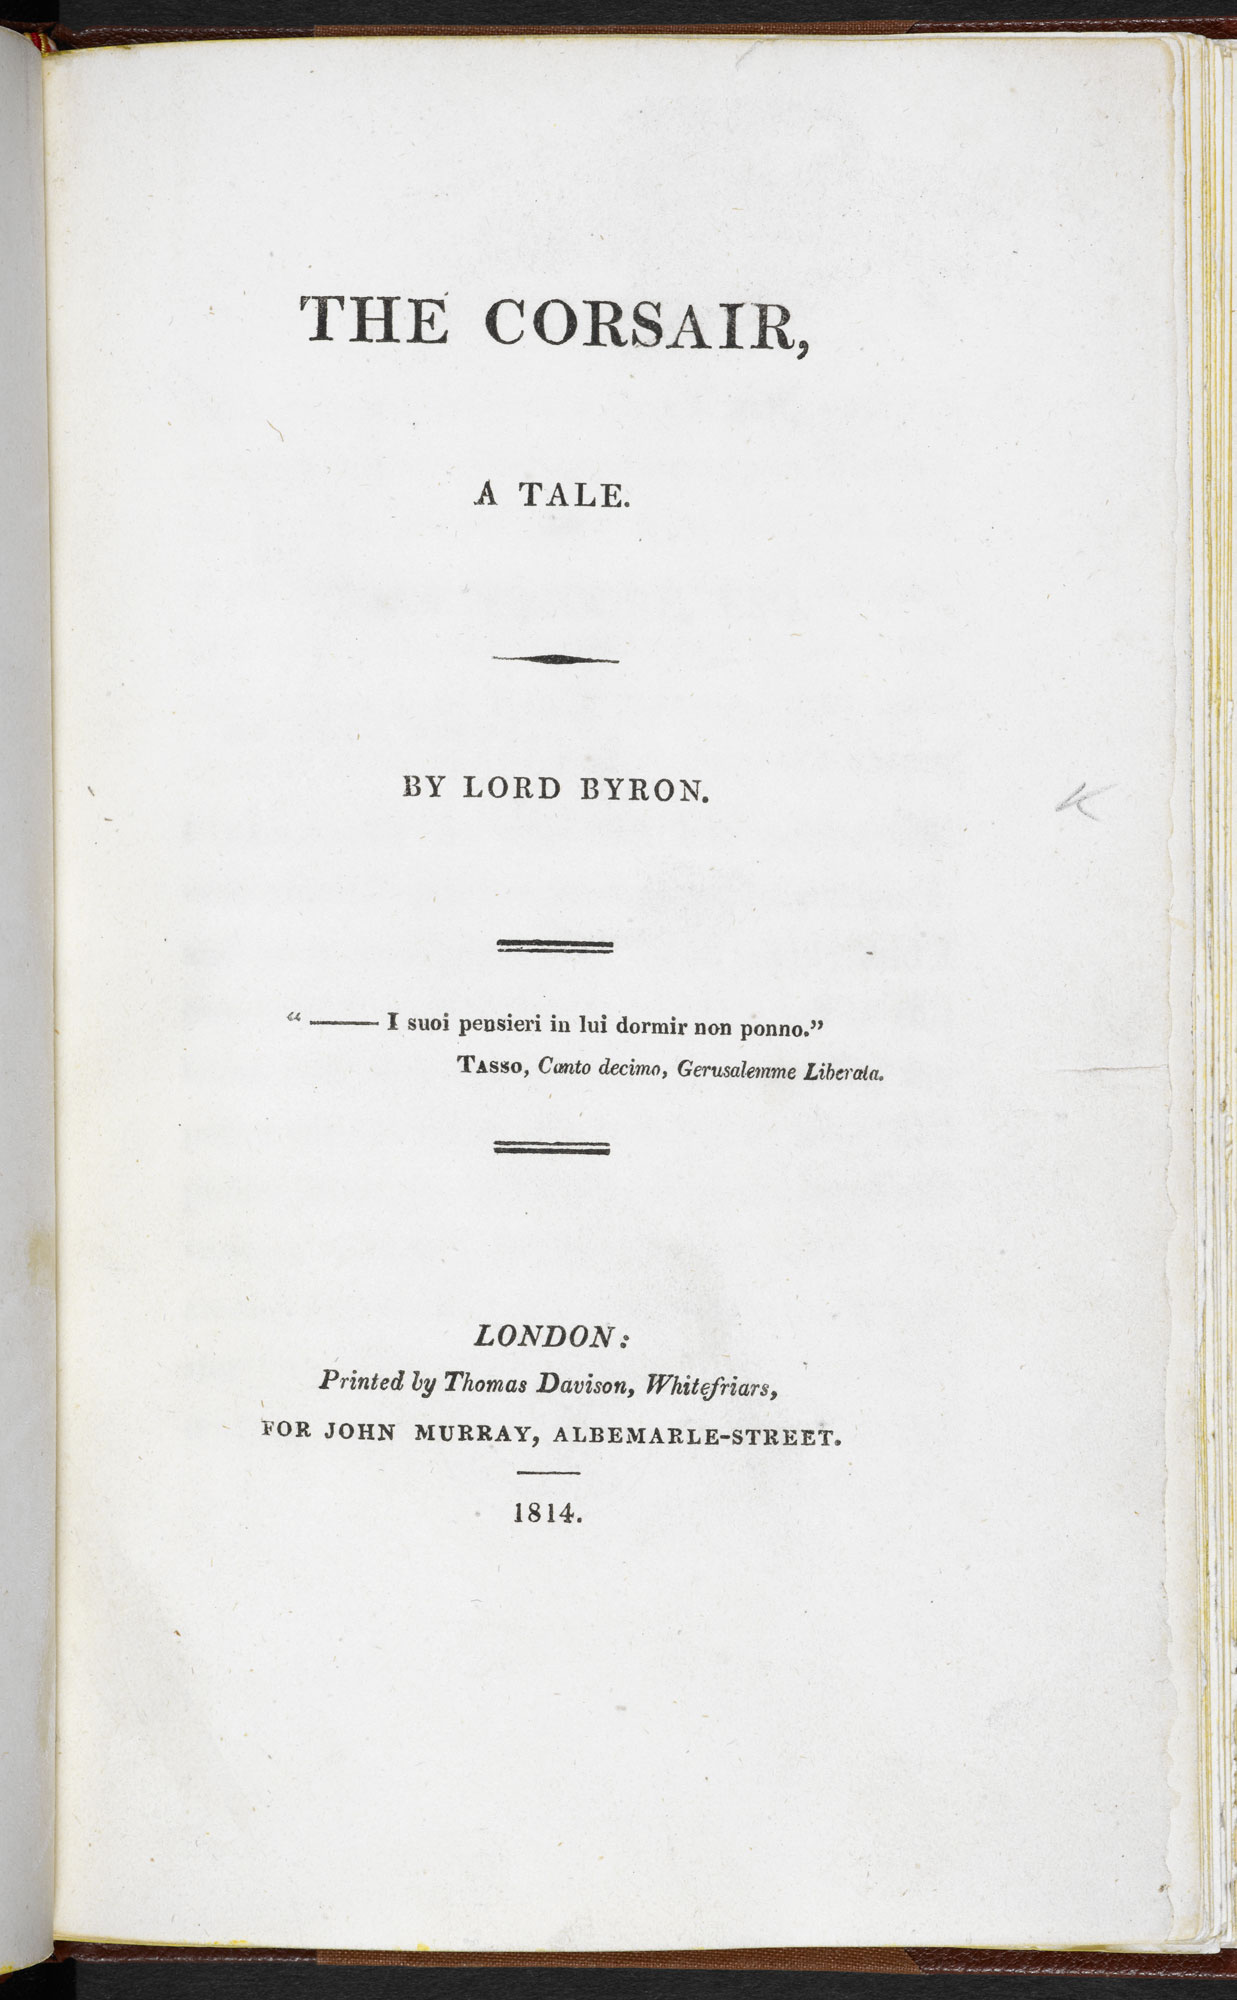 Extract from The Corsair by Byron [page: title page]